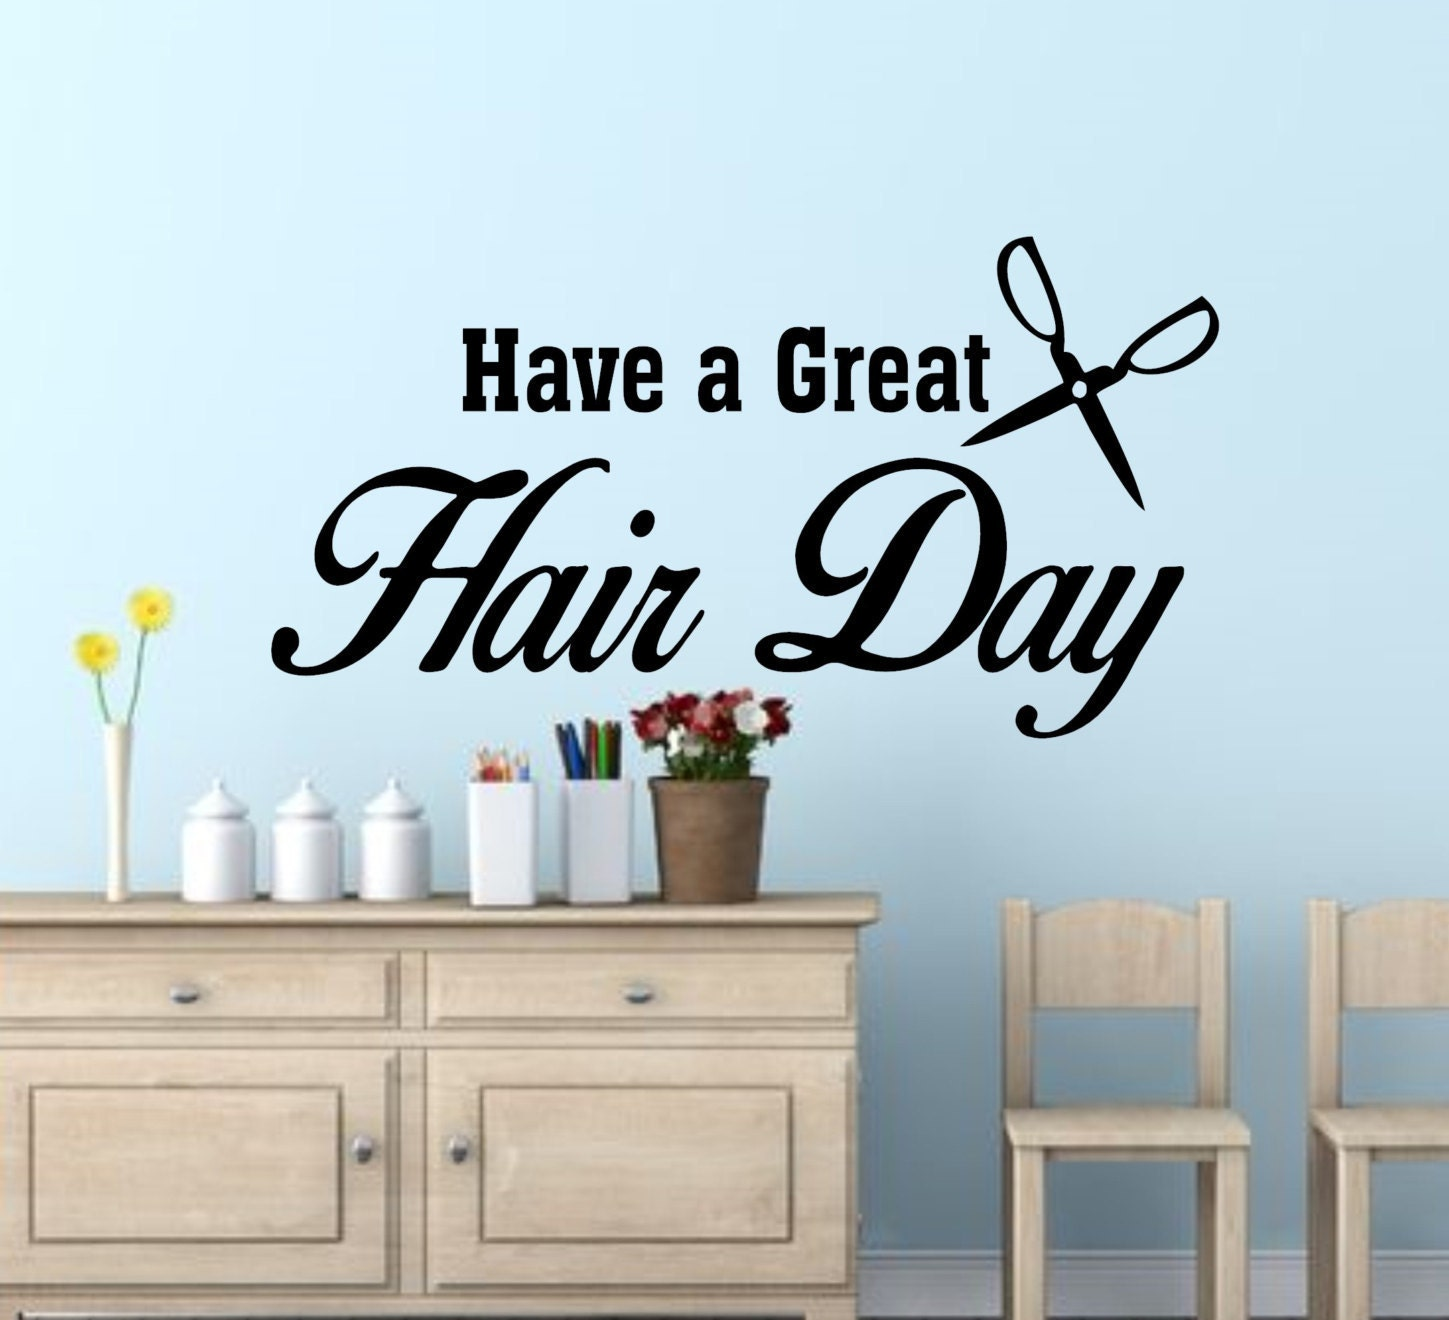 Hair Salon Wall Decor hair salon decor-have a great hair day-salon wall decals-salon